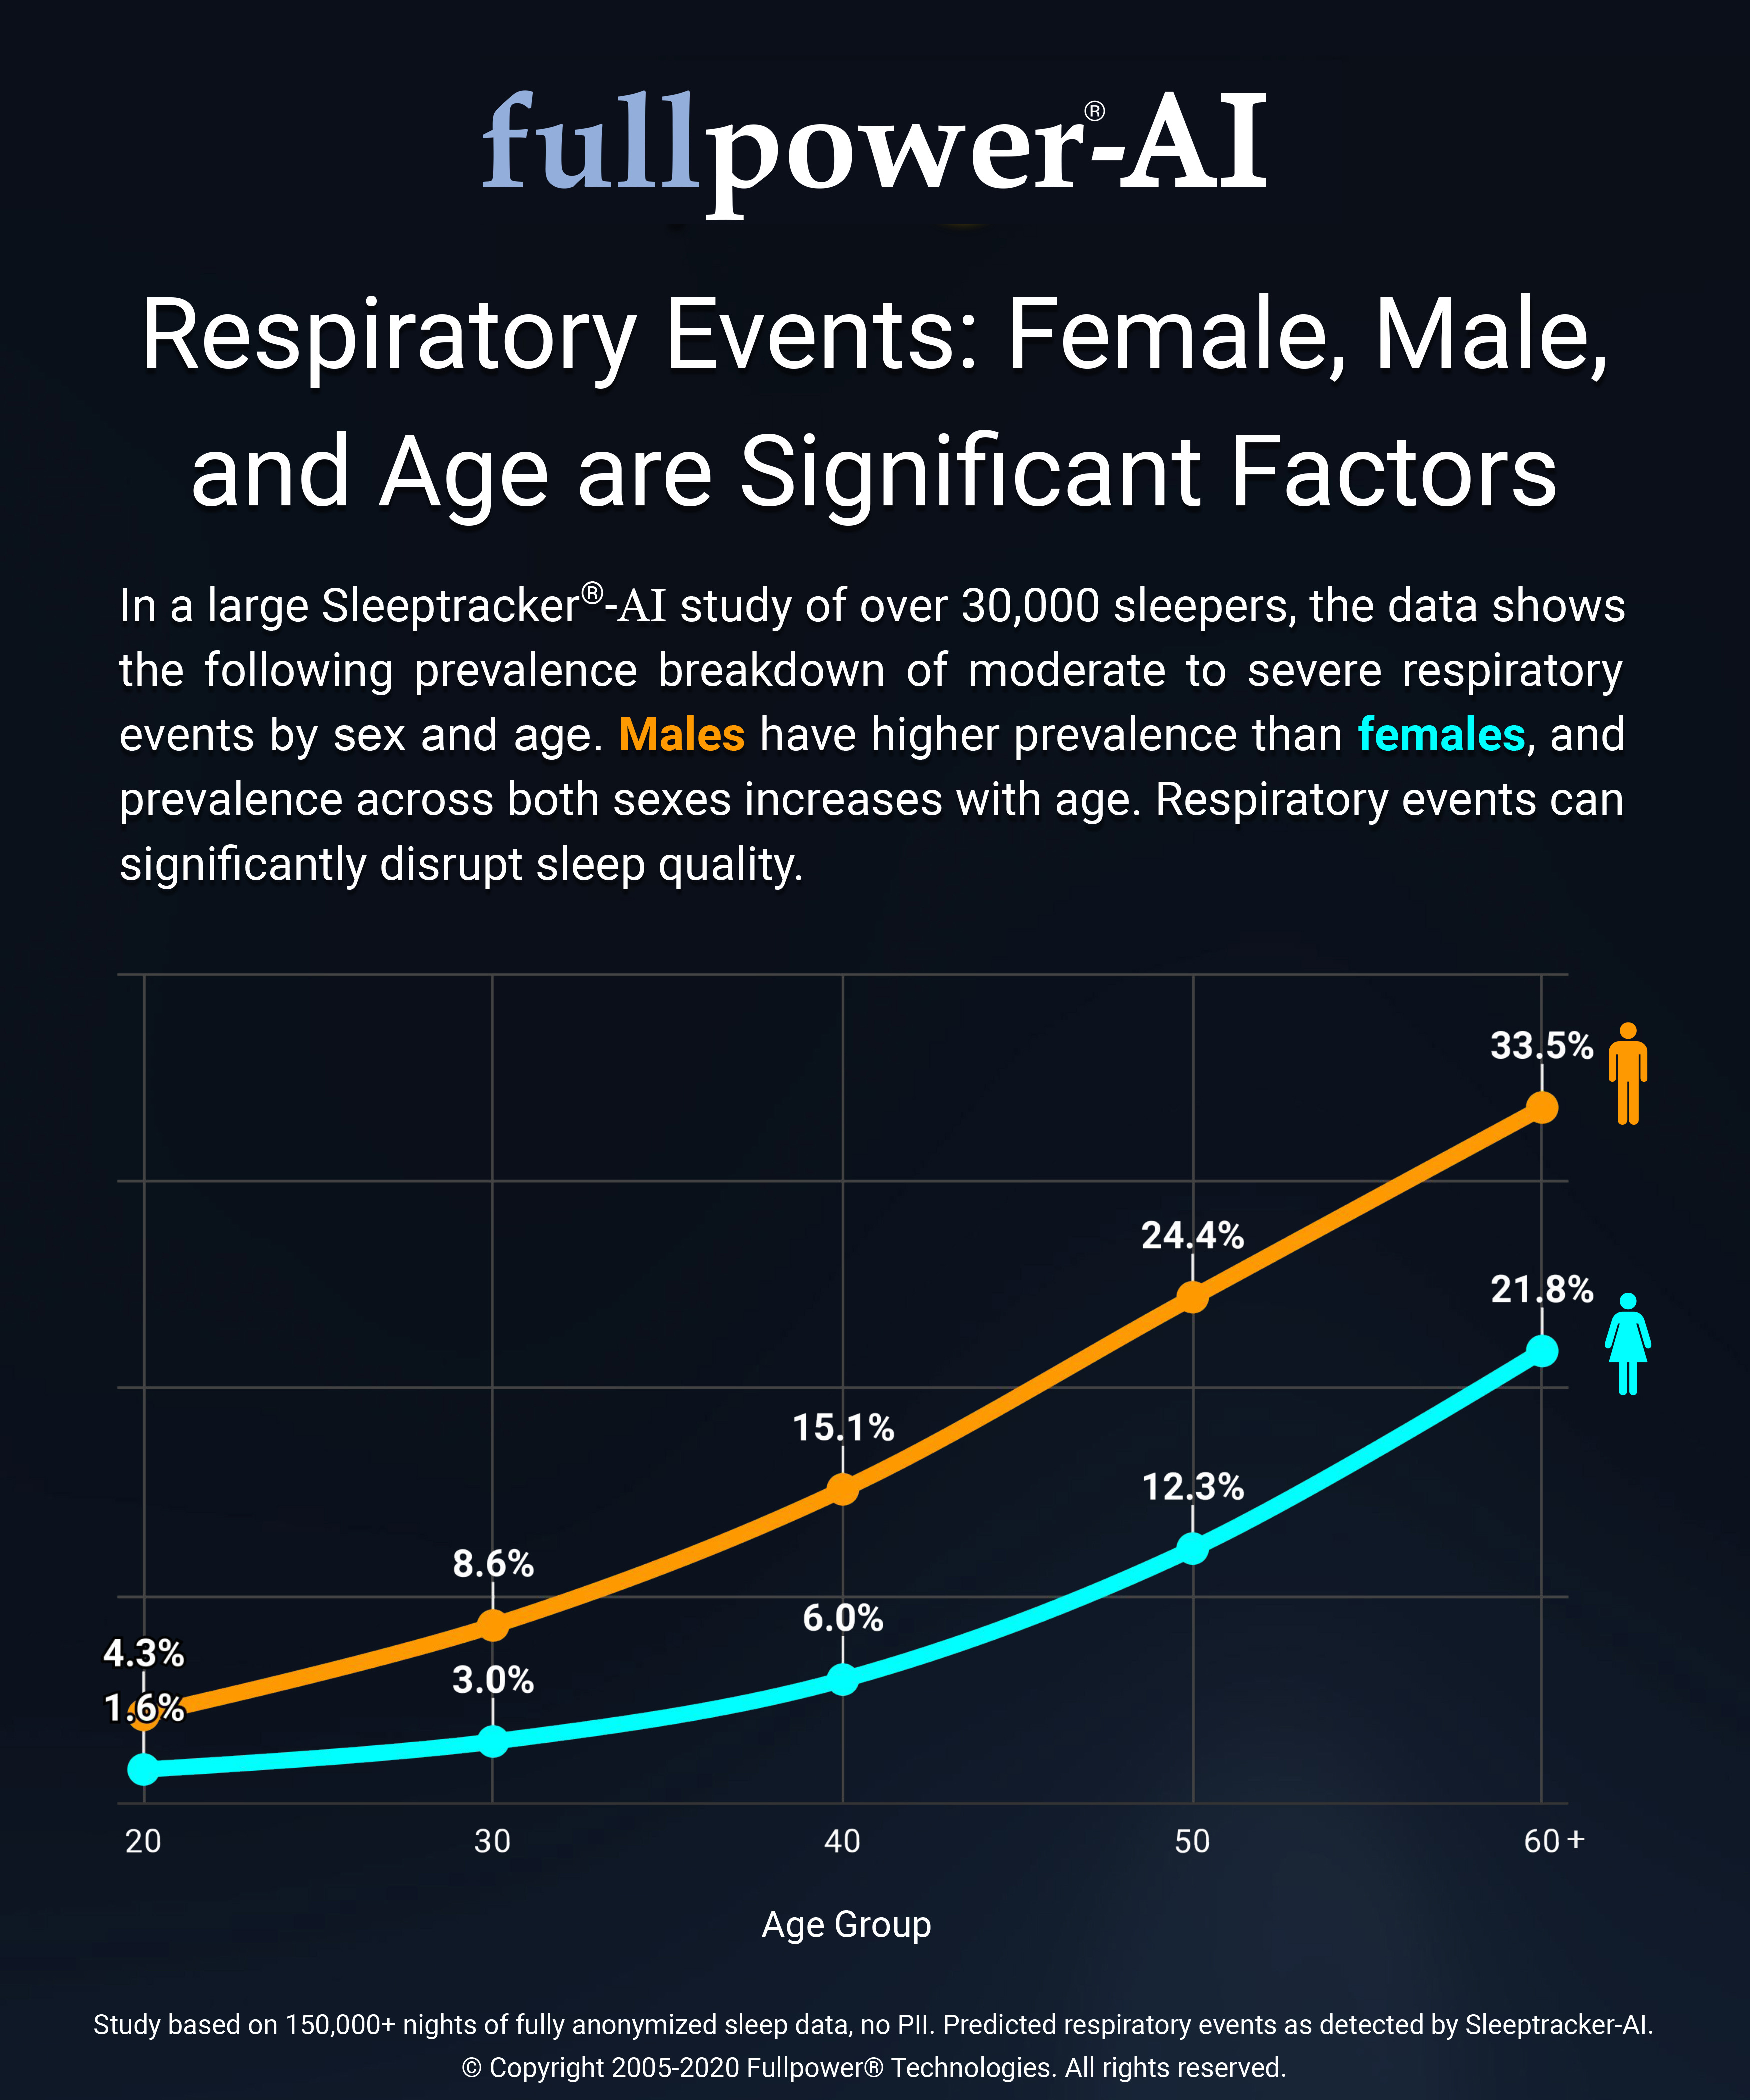 respiratory-events-female-male-and-age-are-significant-factors